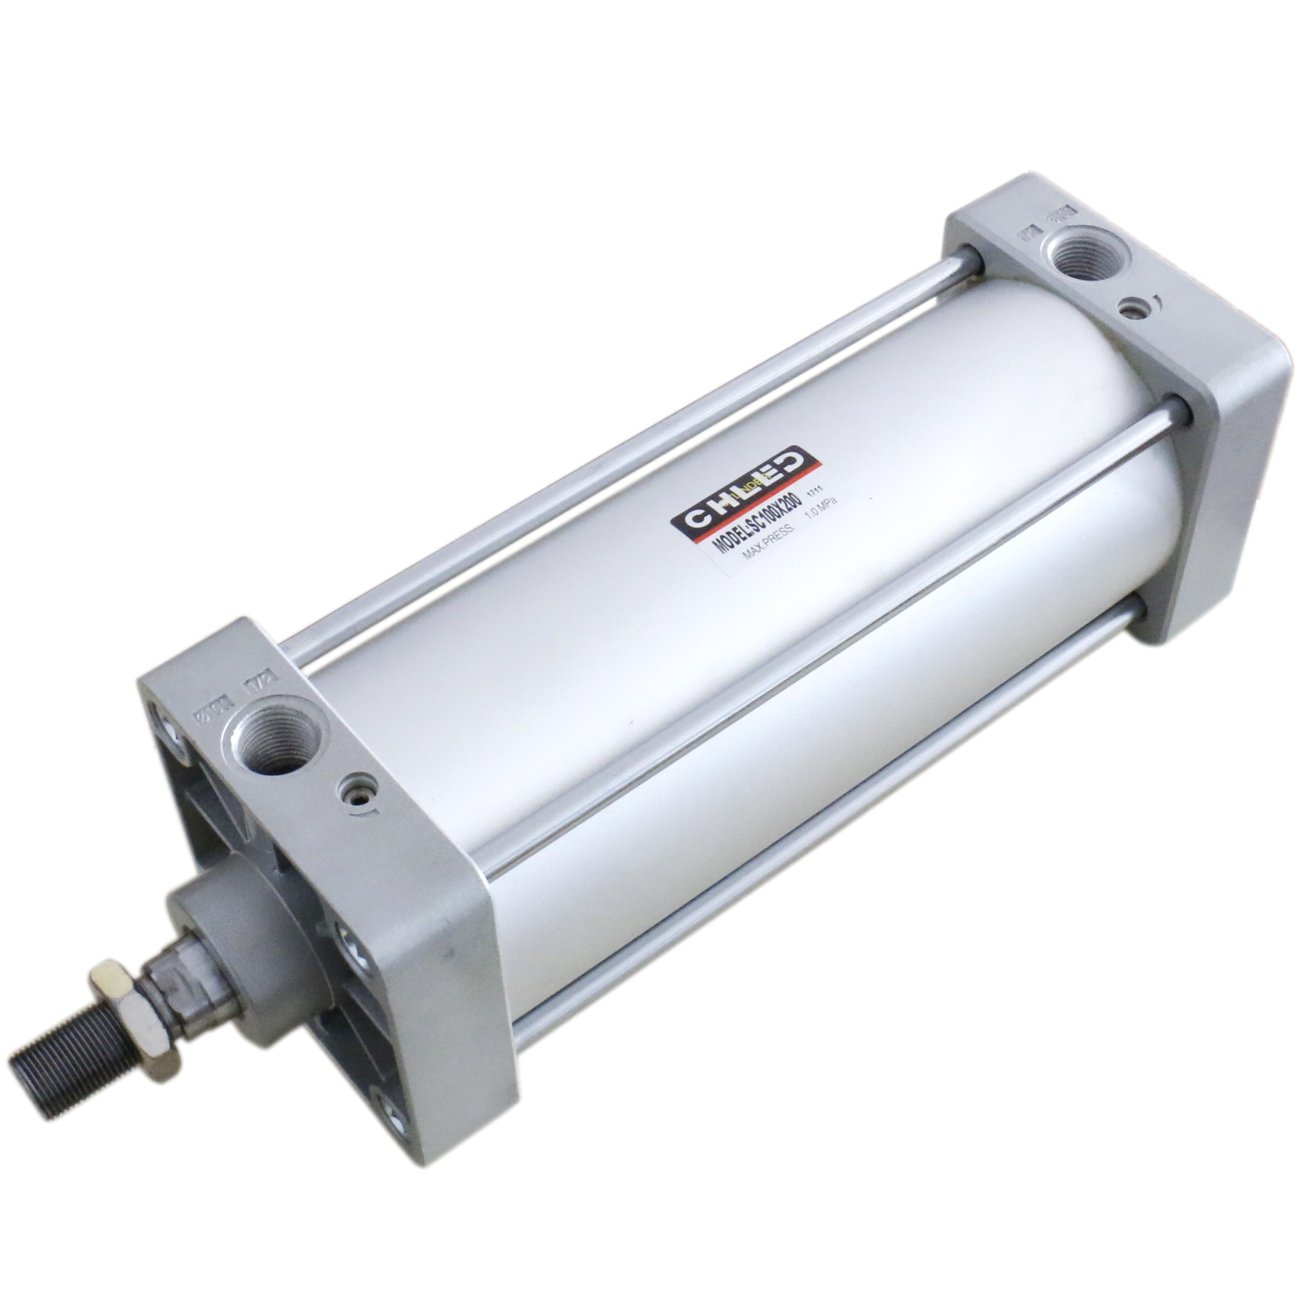 32mm Bore 200mm Stroke Screwed Piston Rod Dual Action Air Cylinder SC 32 x 200